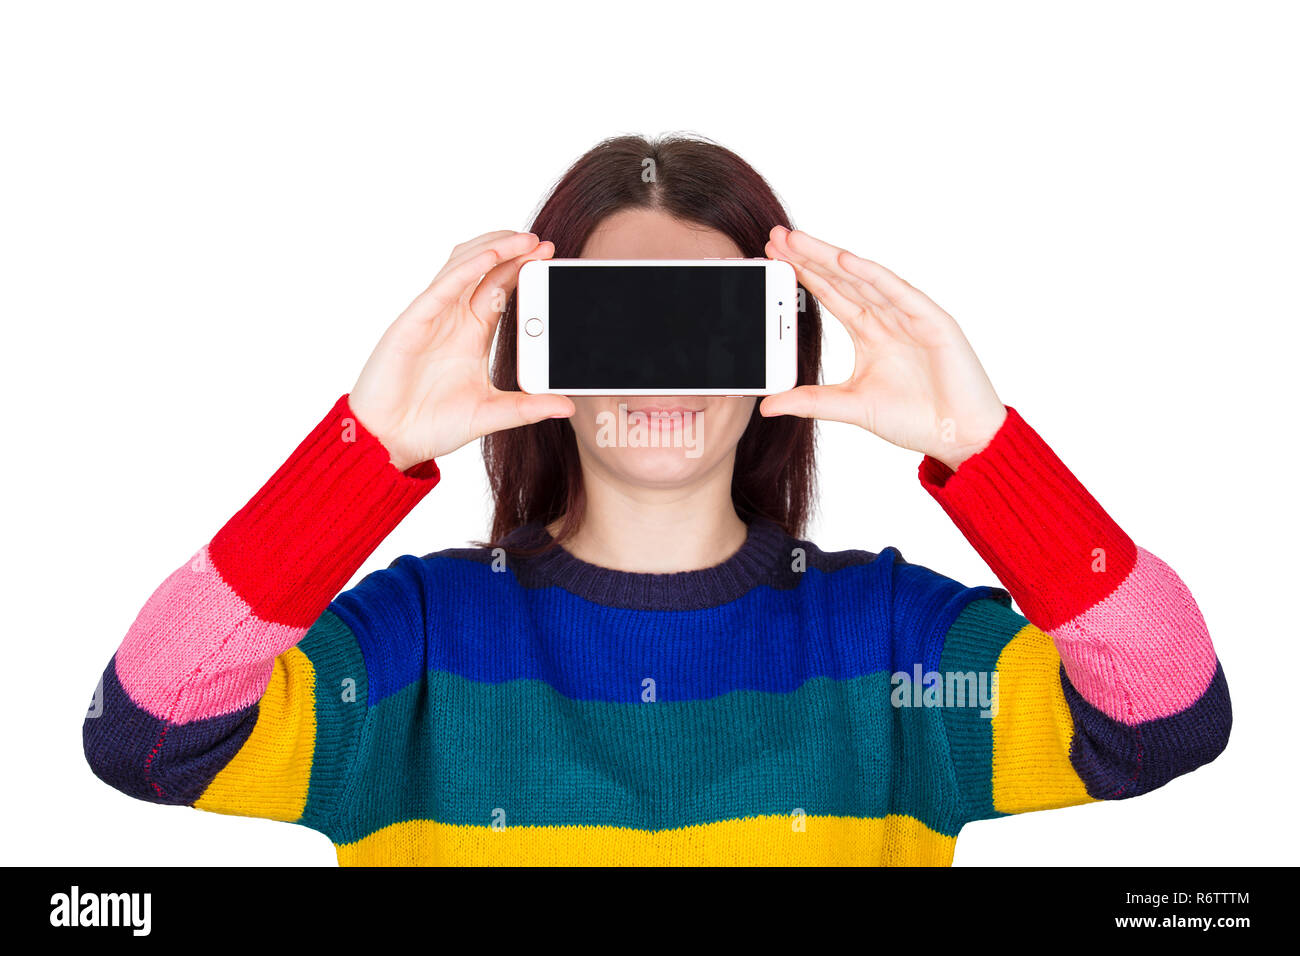 b69357306747 Happy young woman student wearing sweater holding smartphone close to eyes  like looking through virtual reality